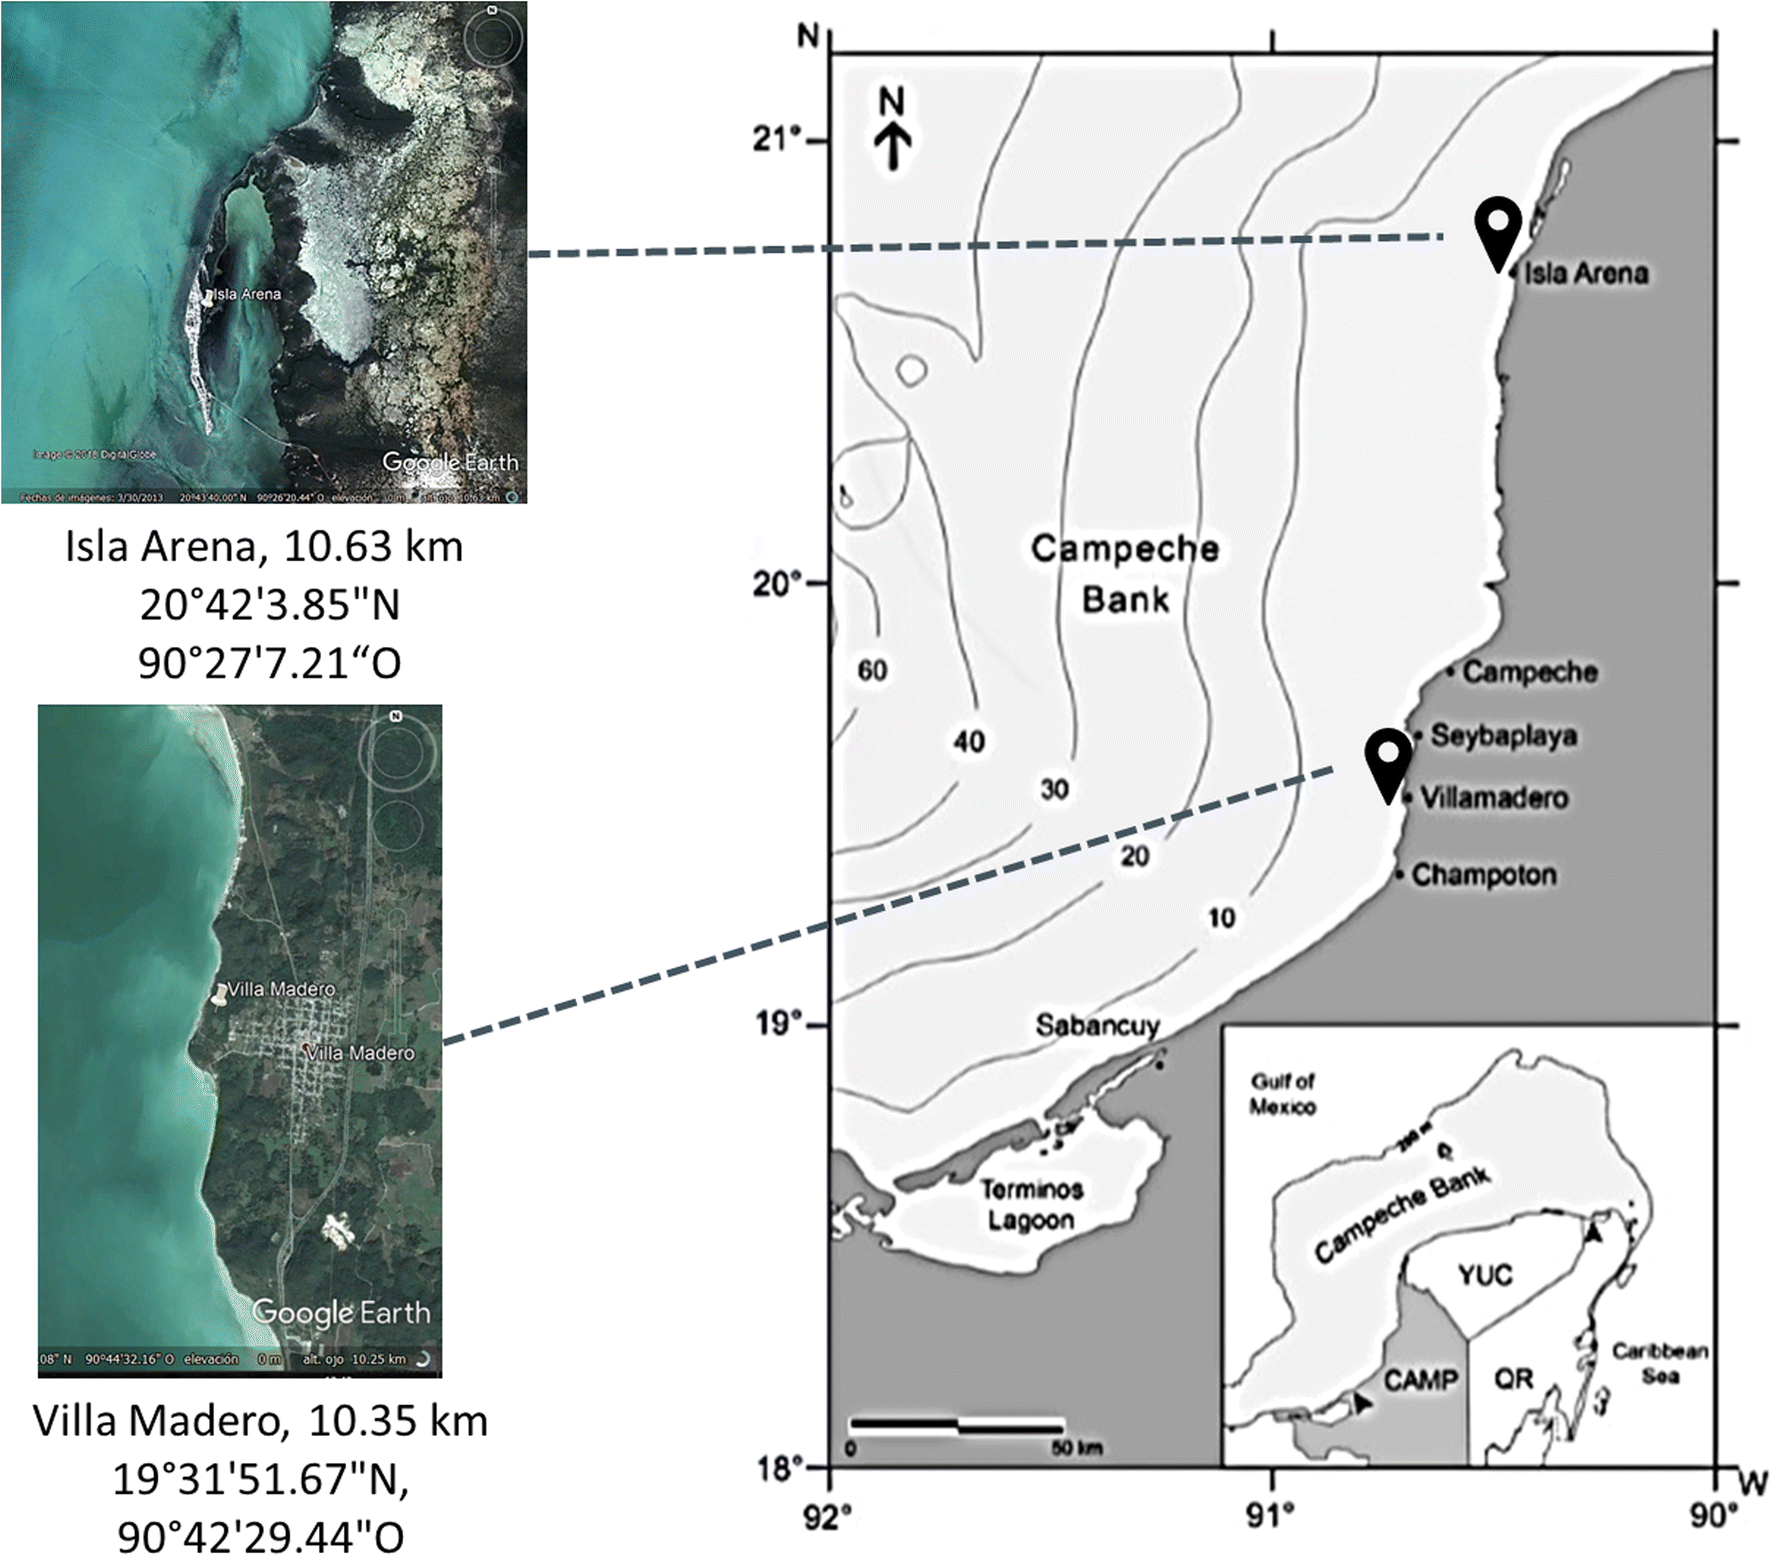 Decision Making in the Campeche Maya Octopus fishery in two